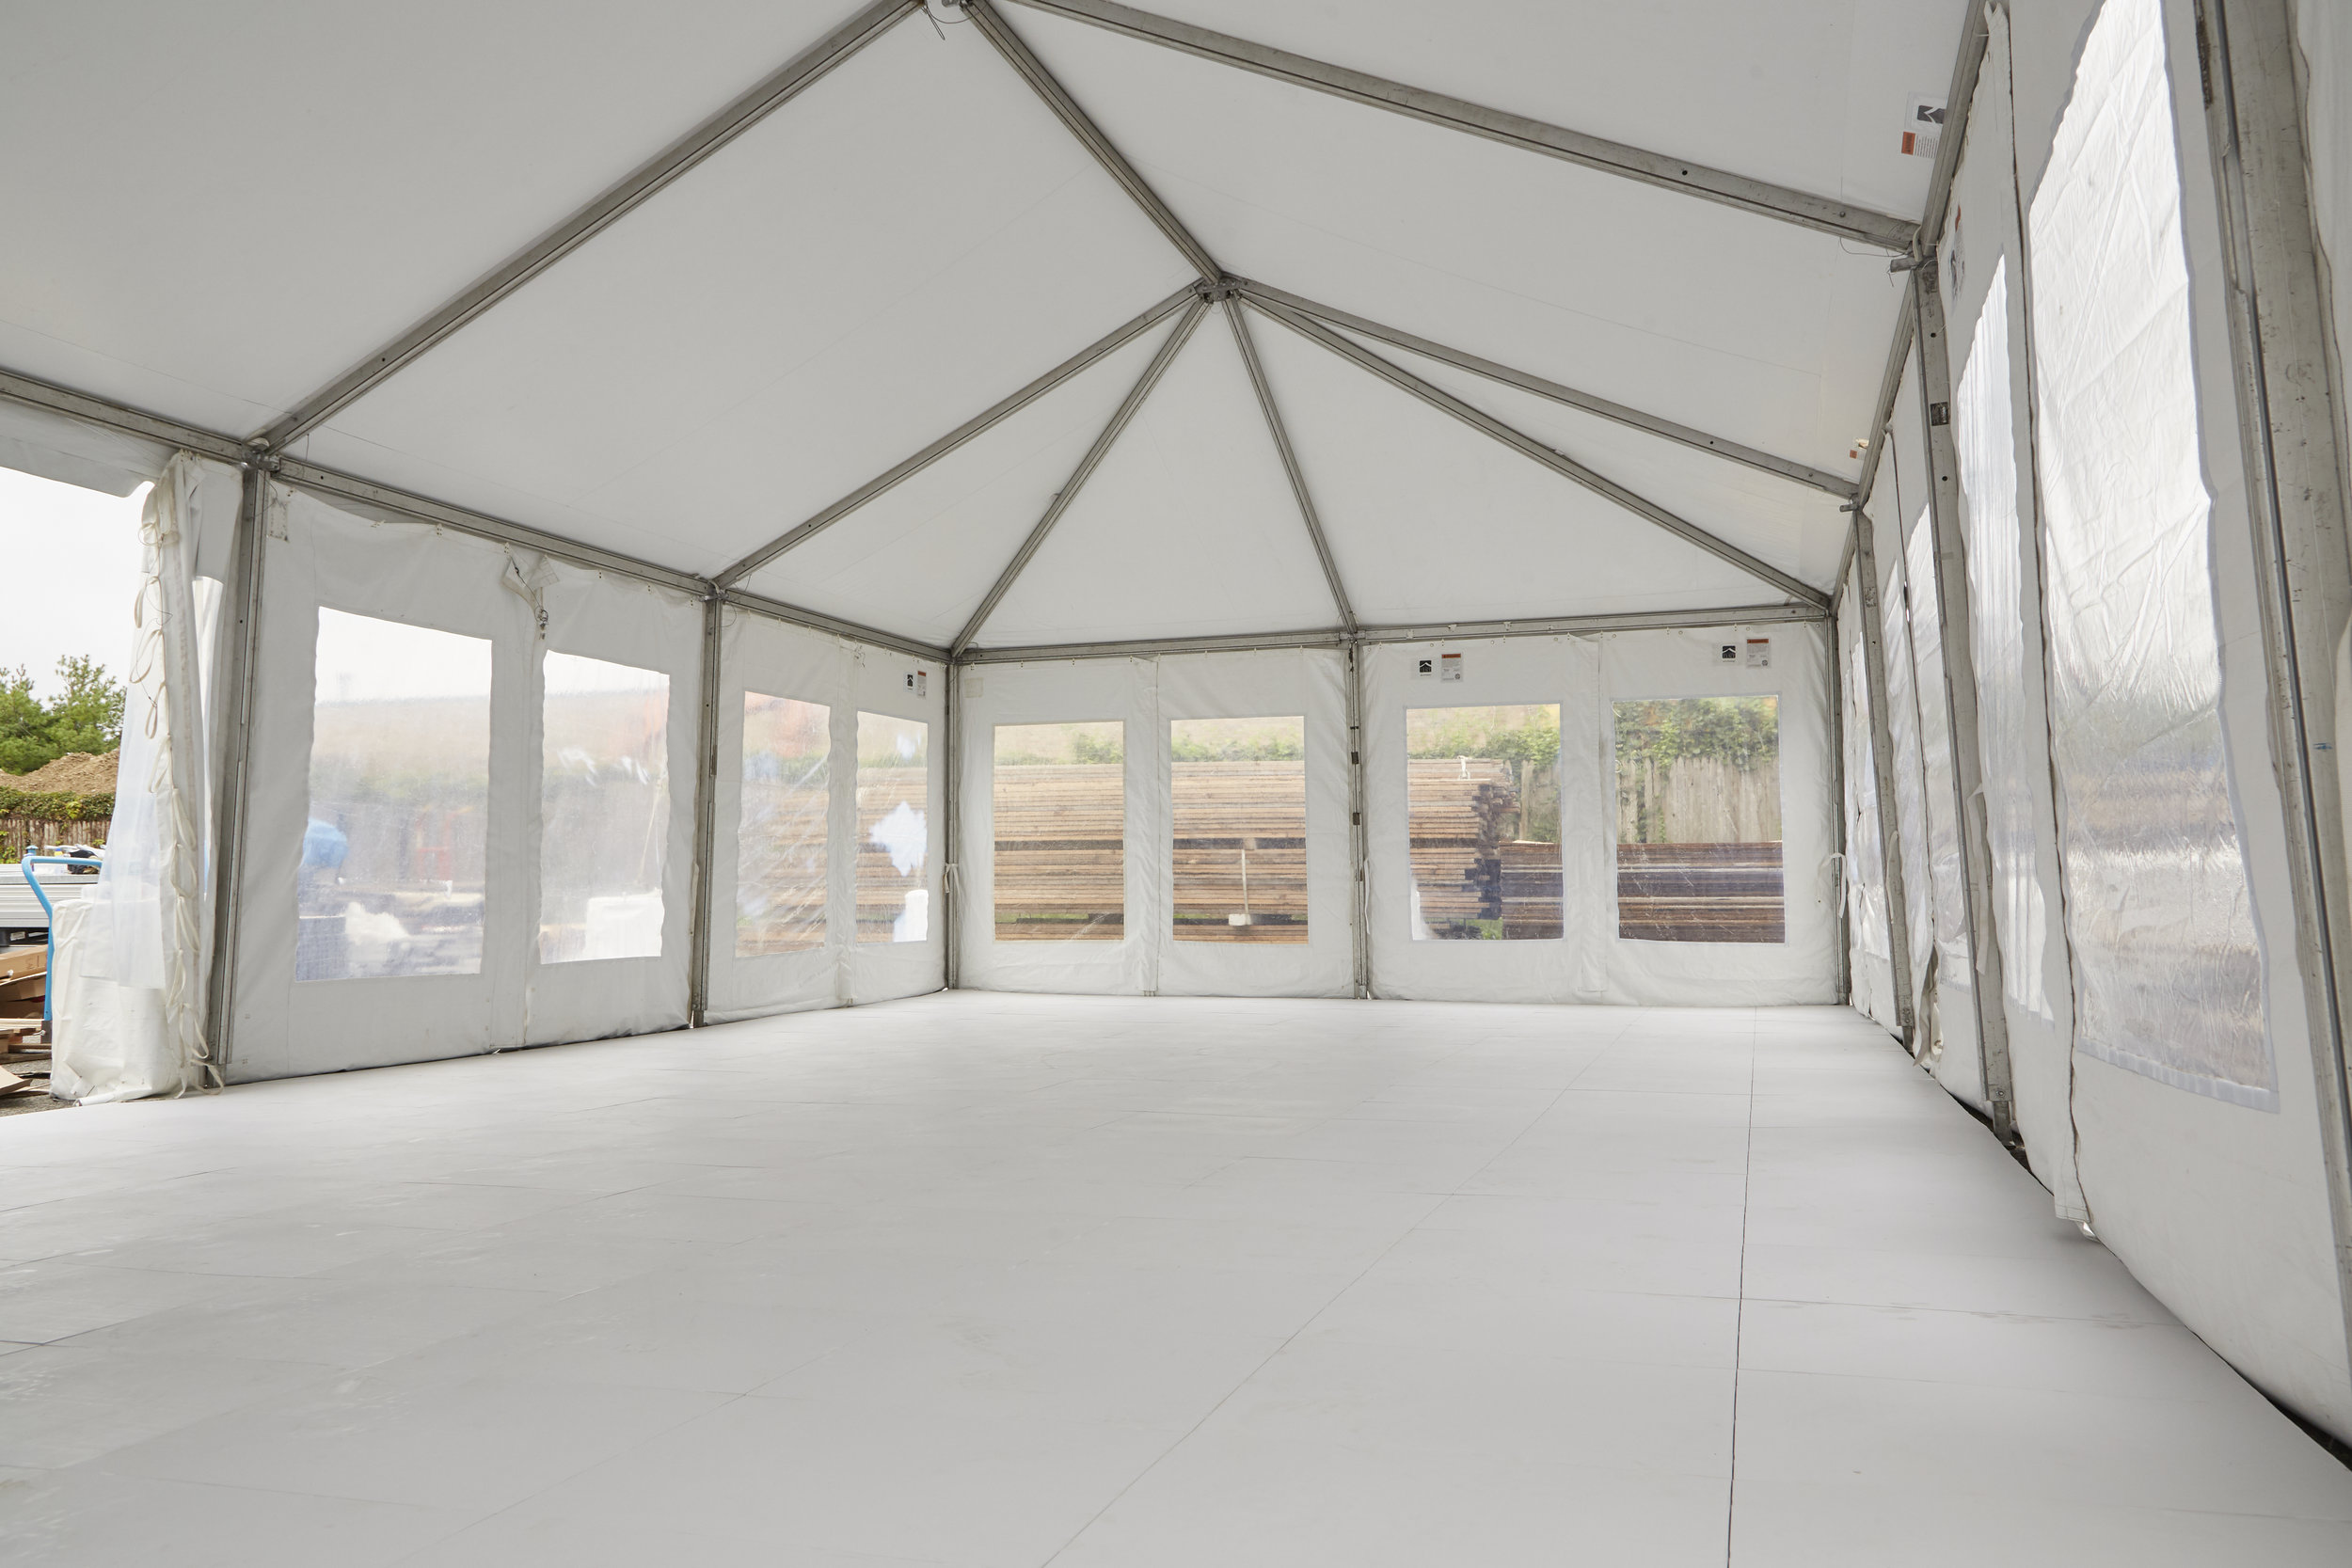 interlocking tent floors